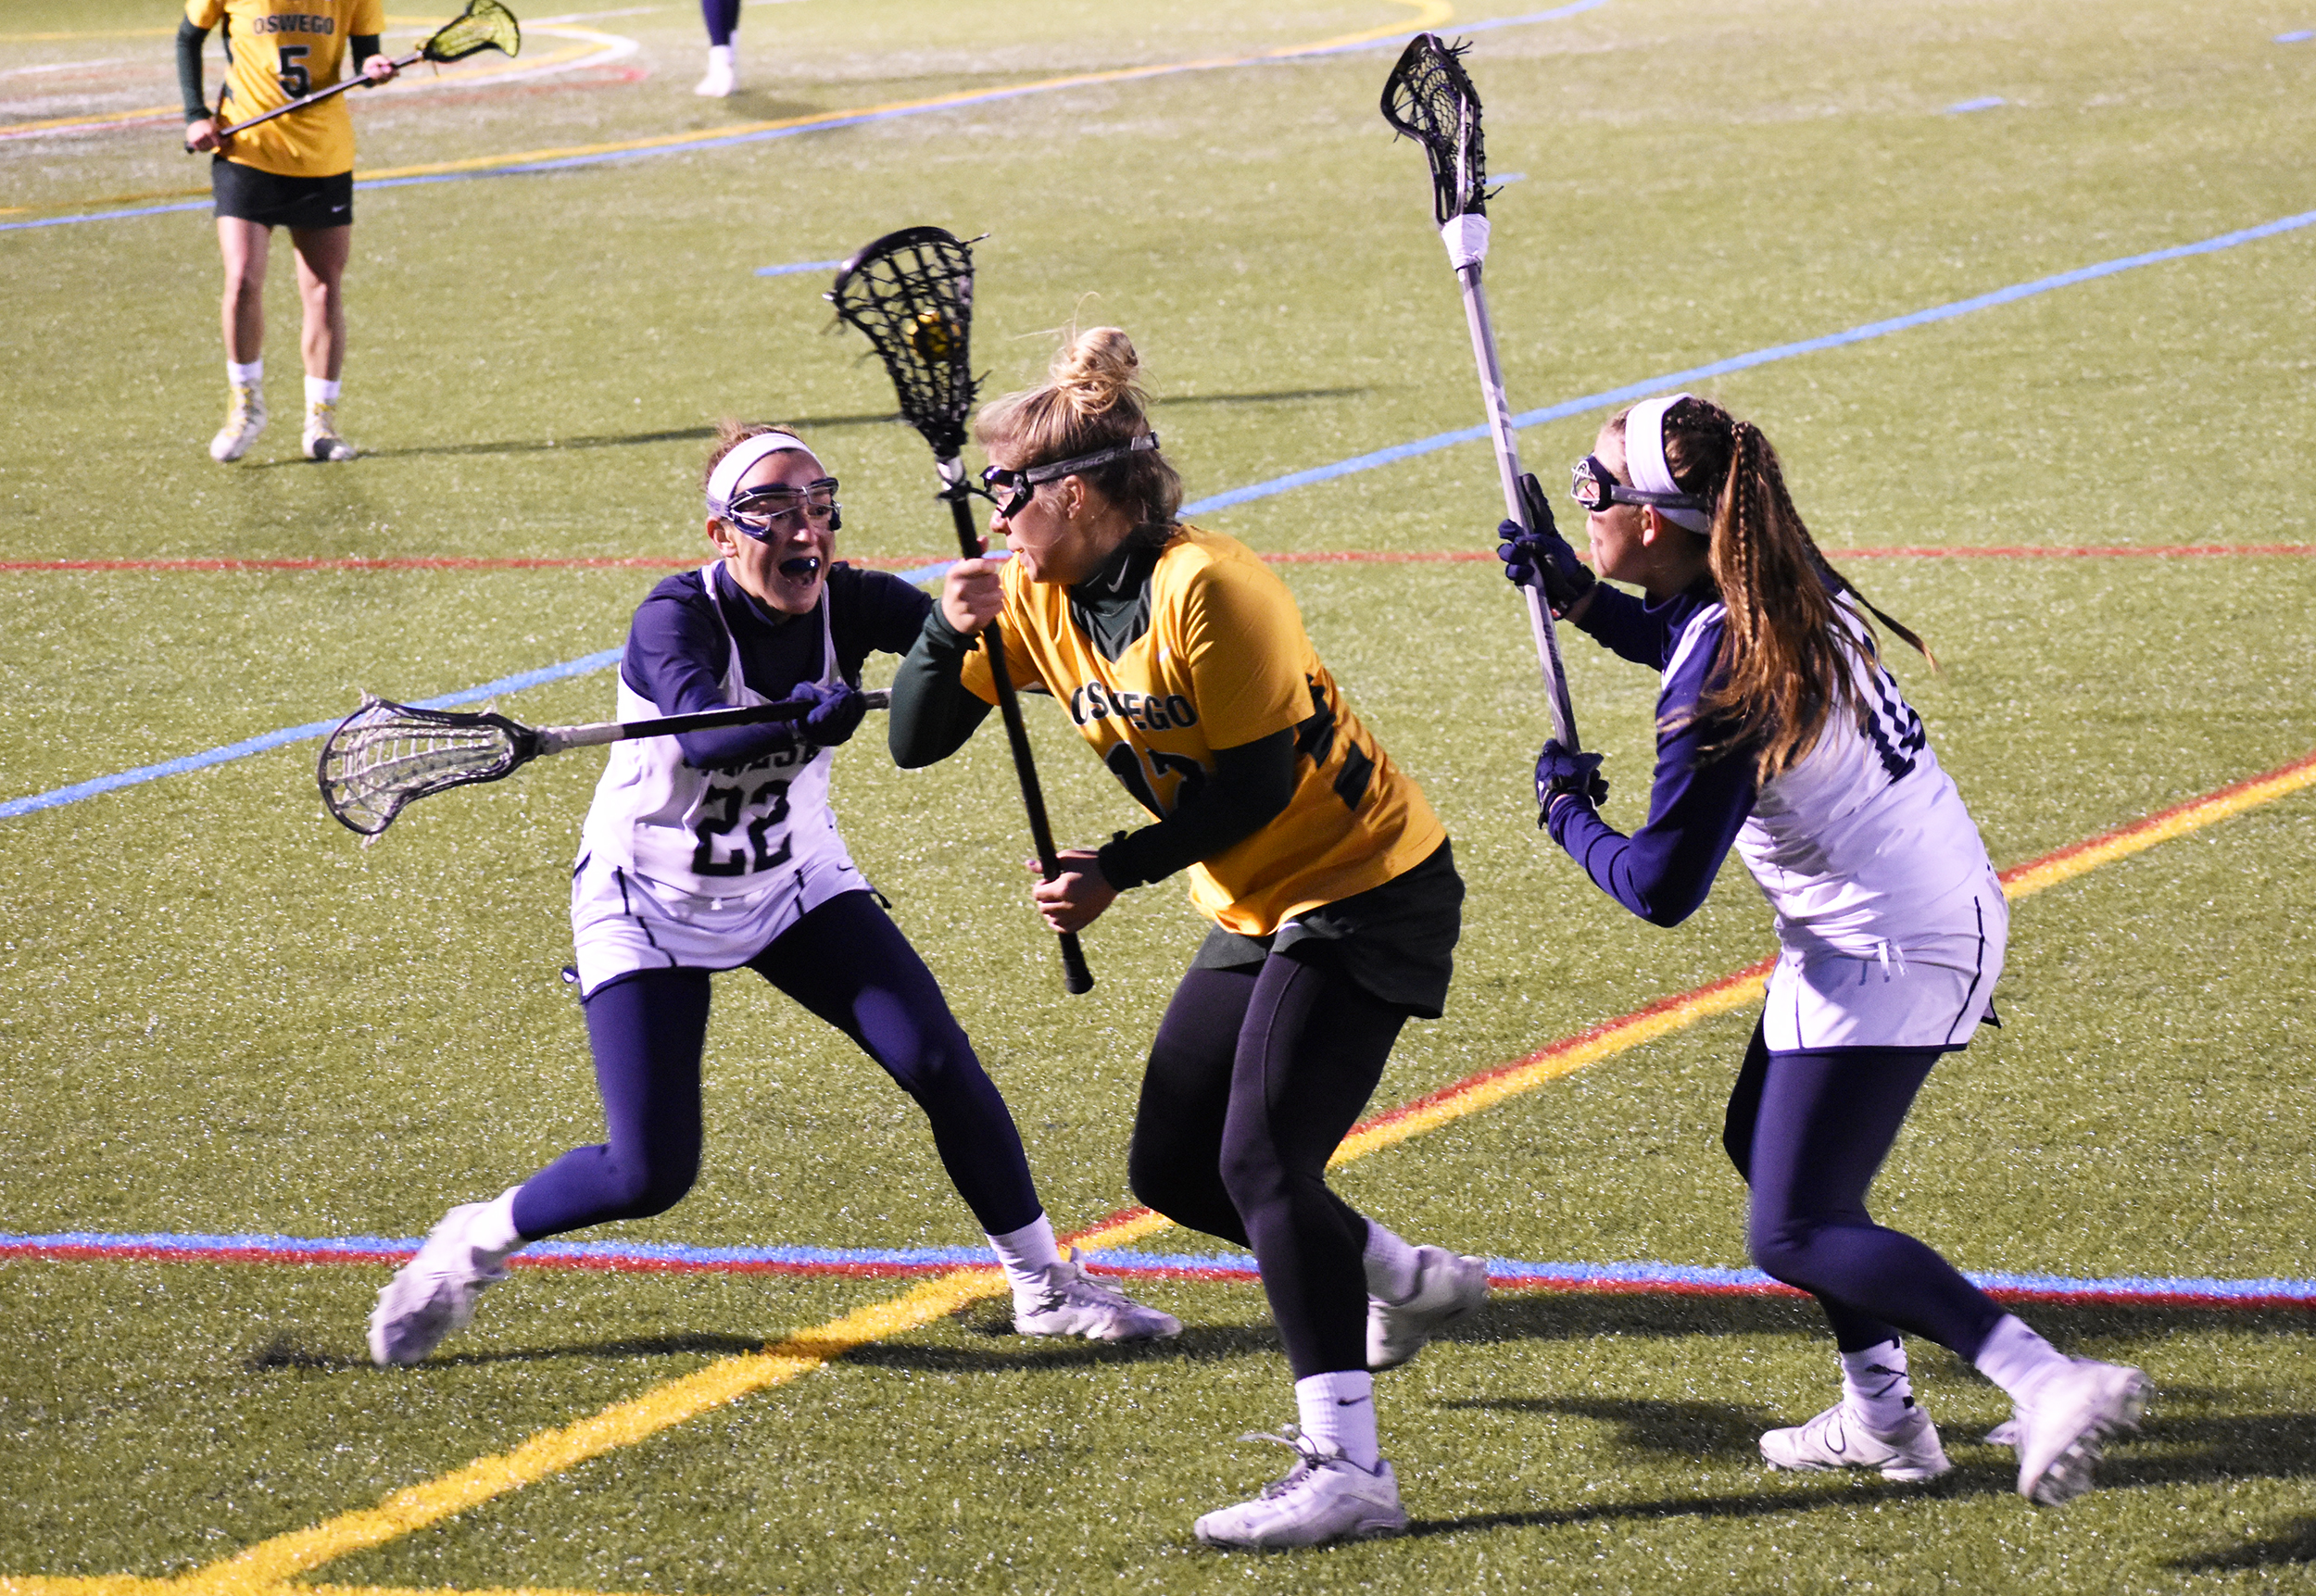 Junior midfielder Tessa Doody and junior defender Cassidy O'Rourke team up to defend an Oswego midfielder. Geneseo defeated Oswego 13-11 on Wednesday April 10 (Josie Kwan/Assoc. Photo Editor).